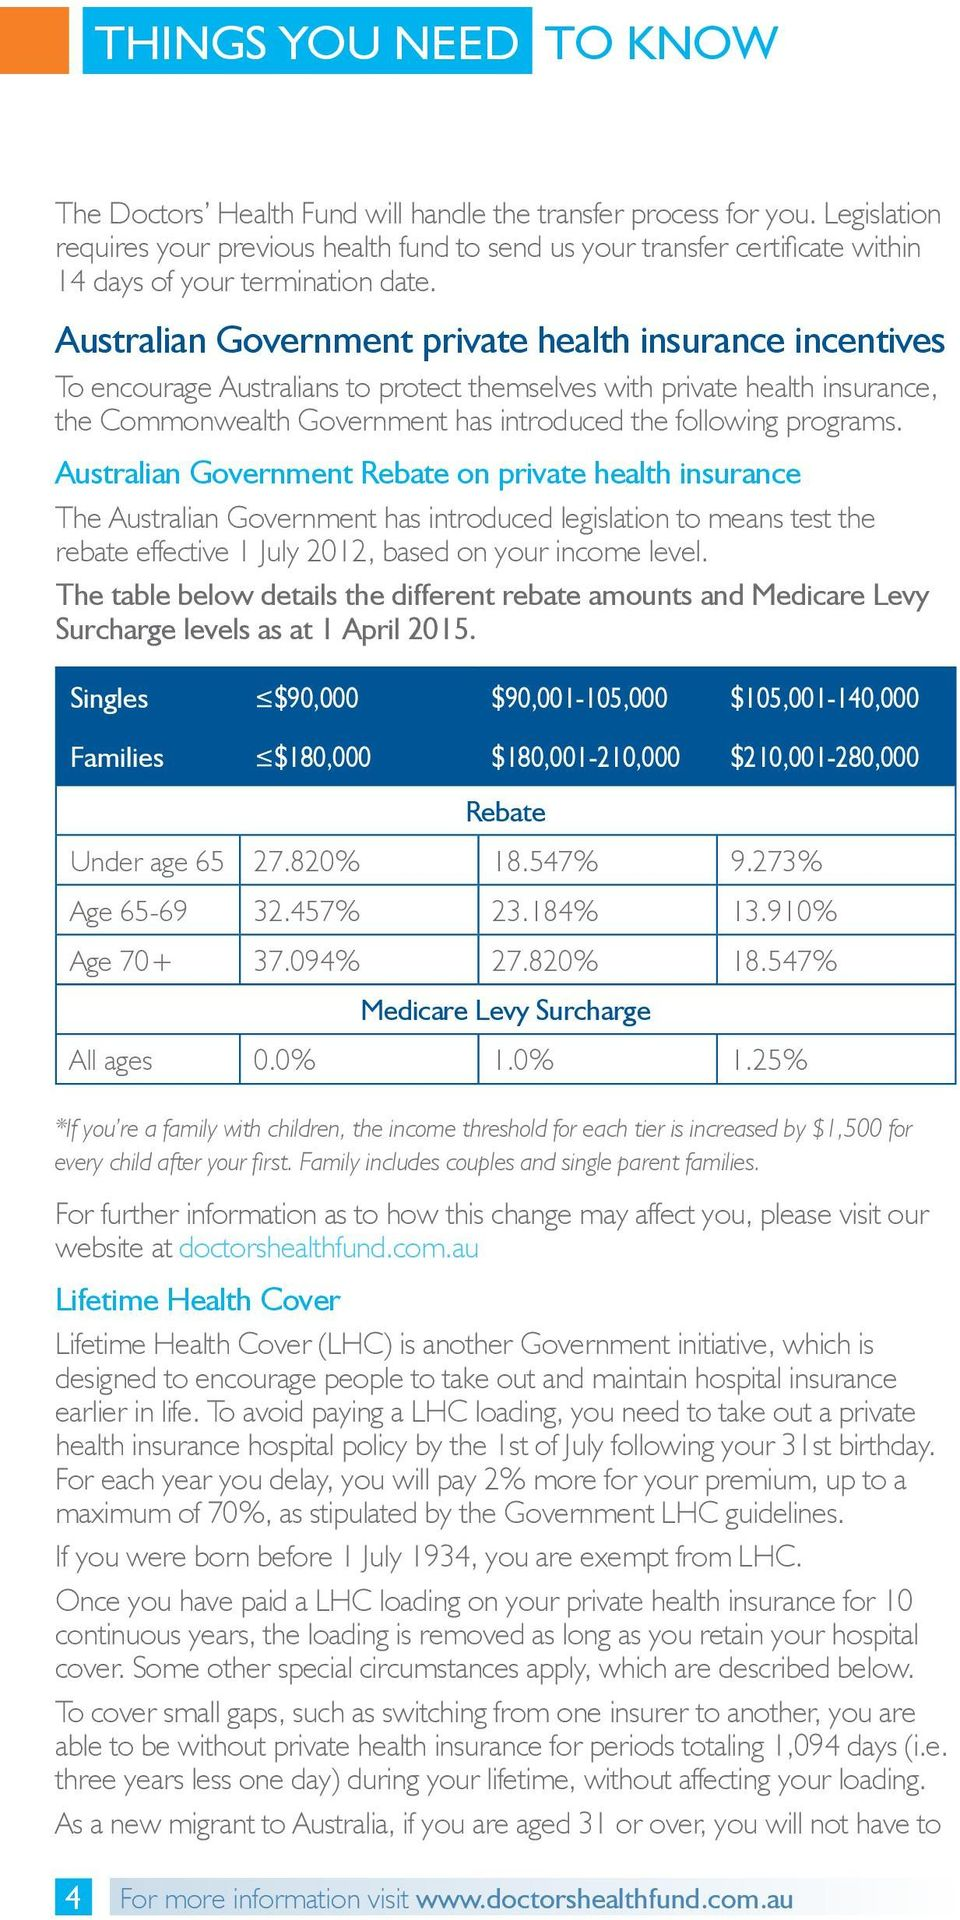 Australian Government private health insurance incentives To encourage Australians to protect themselves with private health insurance, the Commonwealth Government has introduced the following